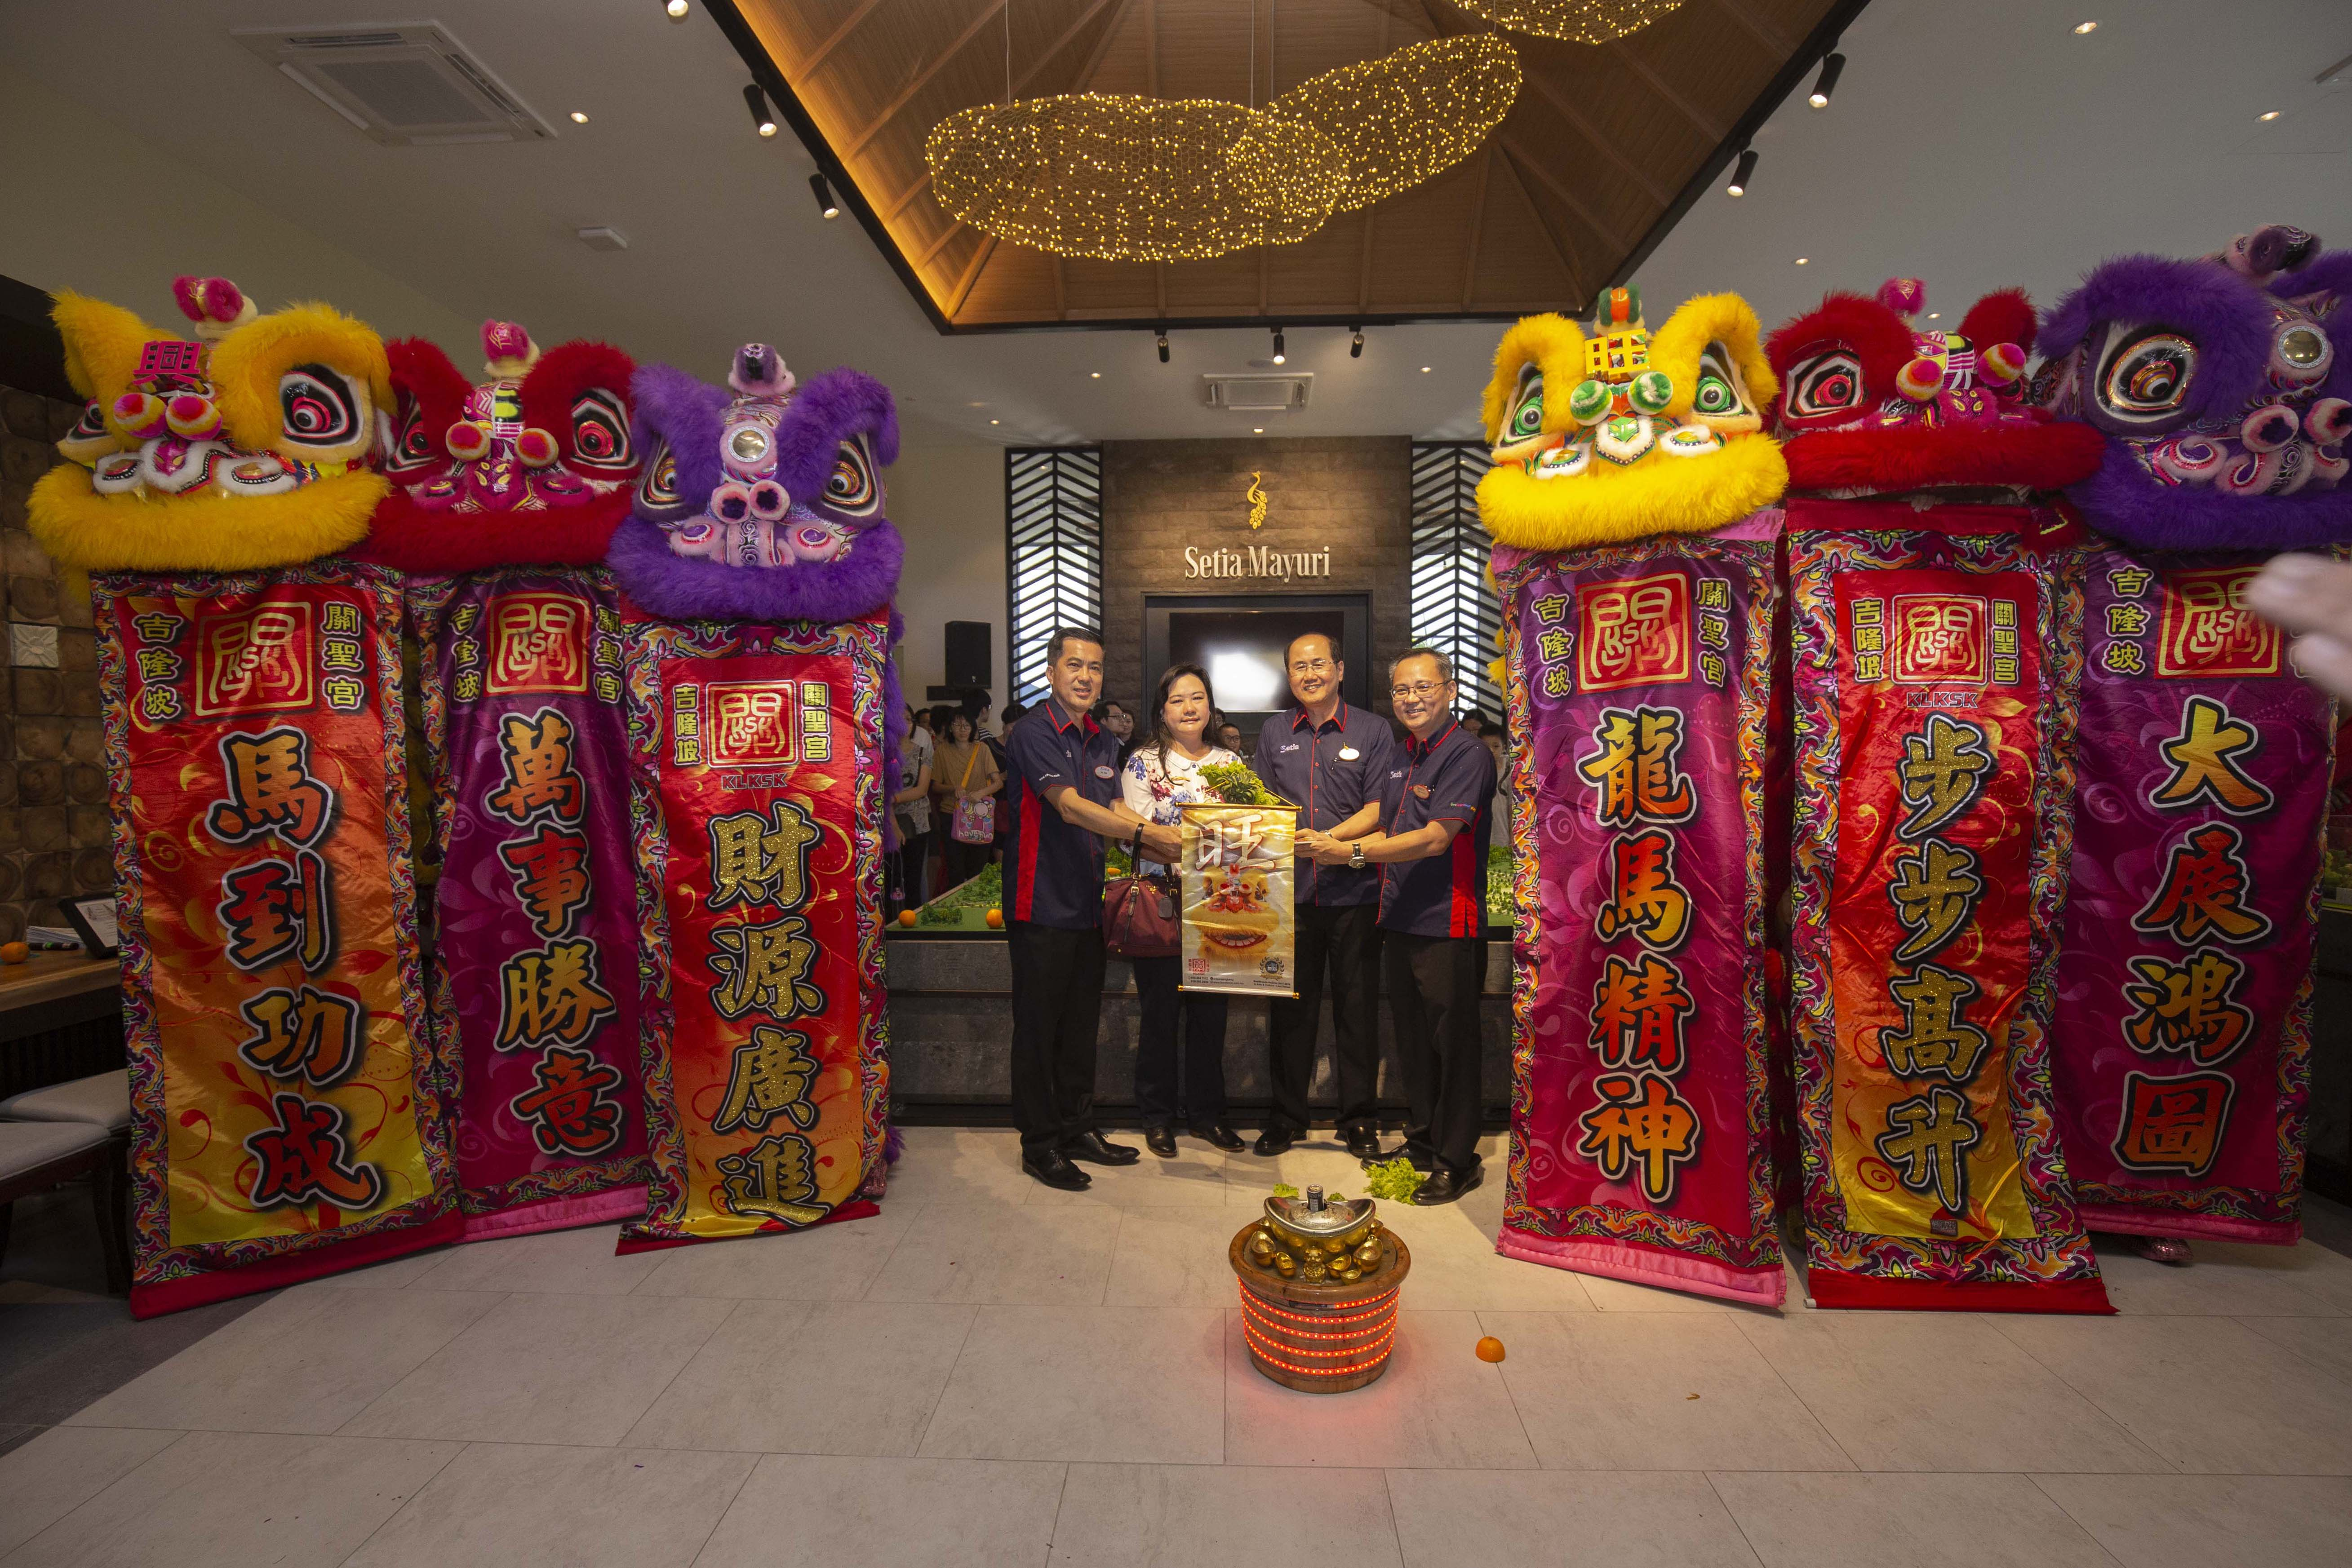 S P SETIA LAUNCHES BALI-INSPIRED SETIA MAYURI WELCOME CENTRE